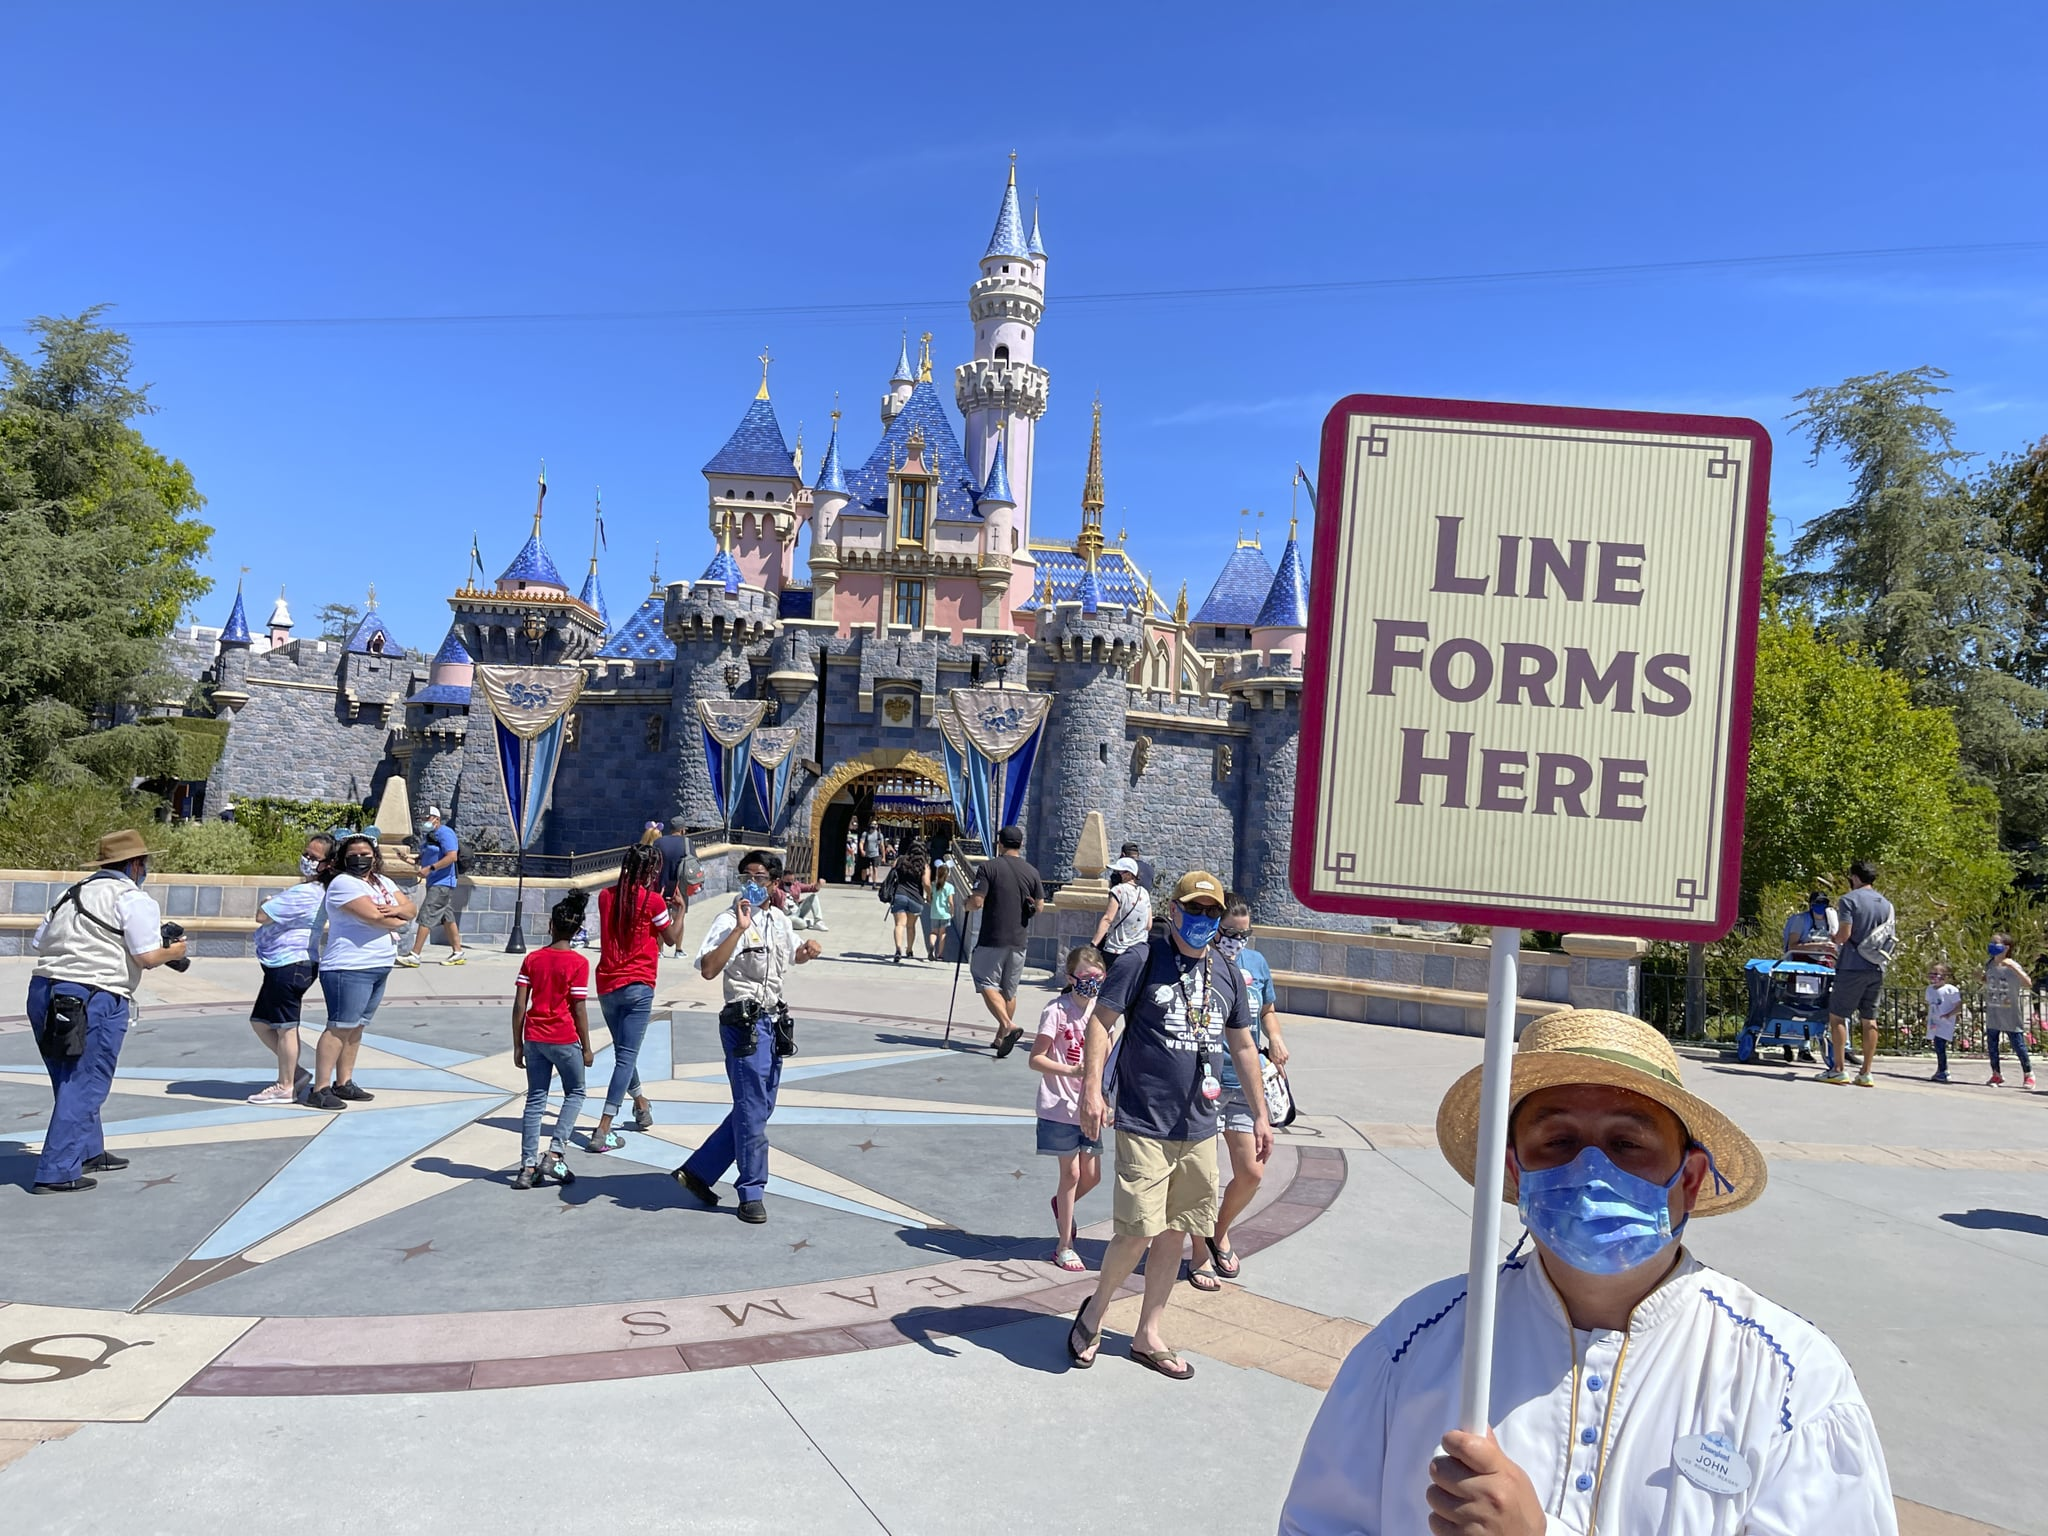 Anaheim, CA - April 30: A Disneyland employee forms a line for visitors to take pictures in front of Sleeping Beauty Castle in Anaheim, CA, on Friday, April 30, 2021. The resort